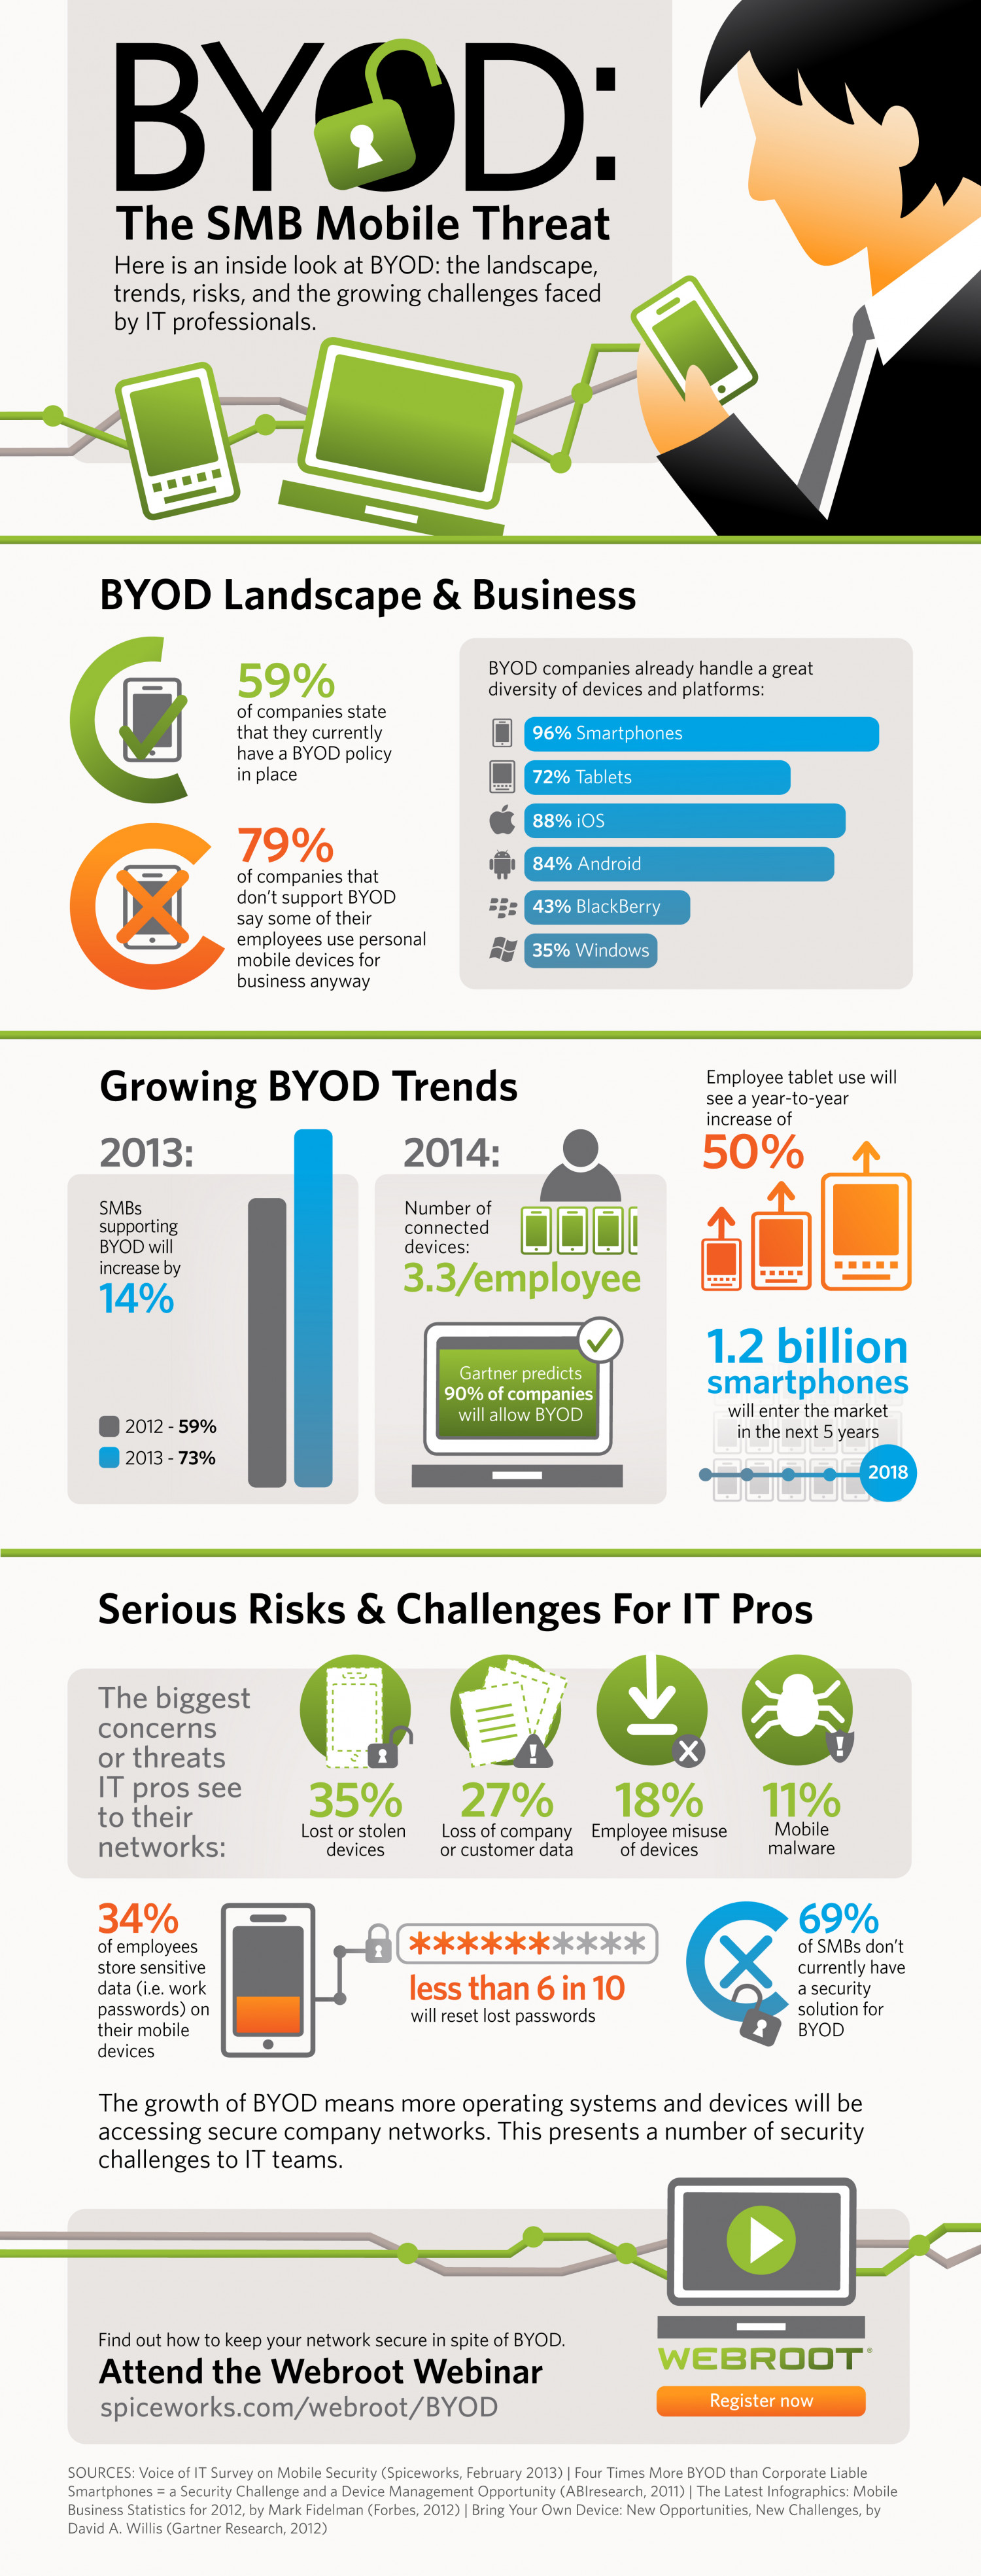 BYOD: The SMB Mobile Threat Infographic